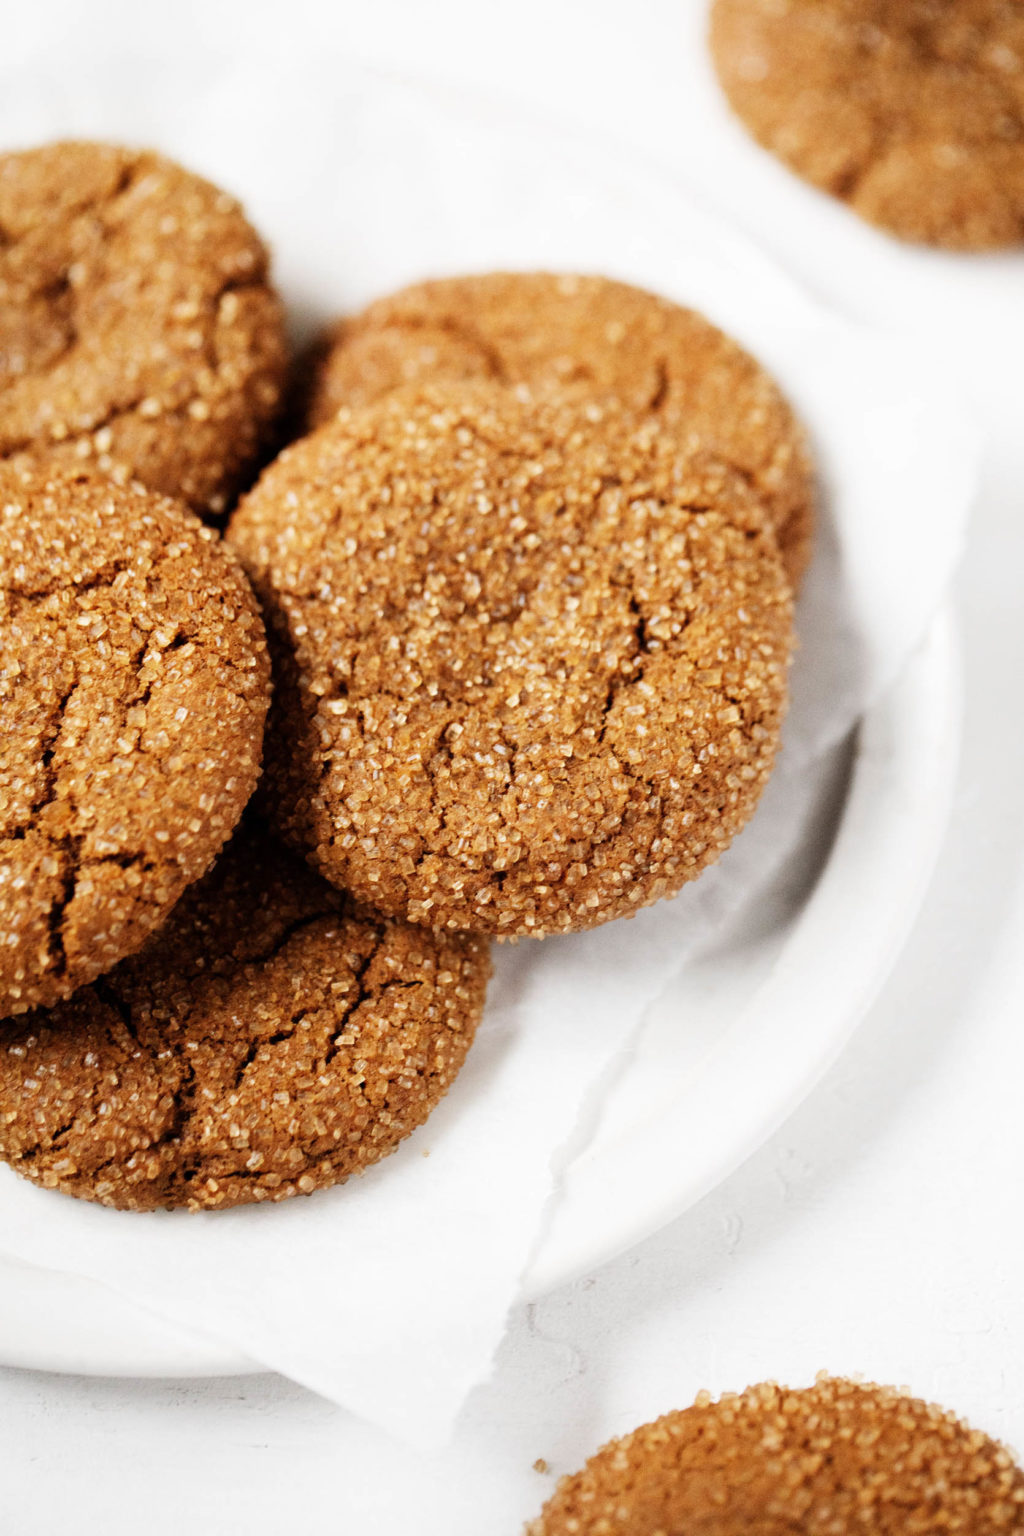 A few vegan molasses ginger cookies are piled onto a plate.